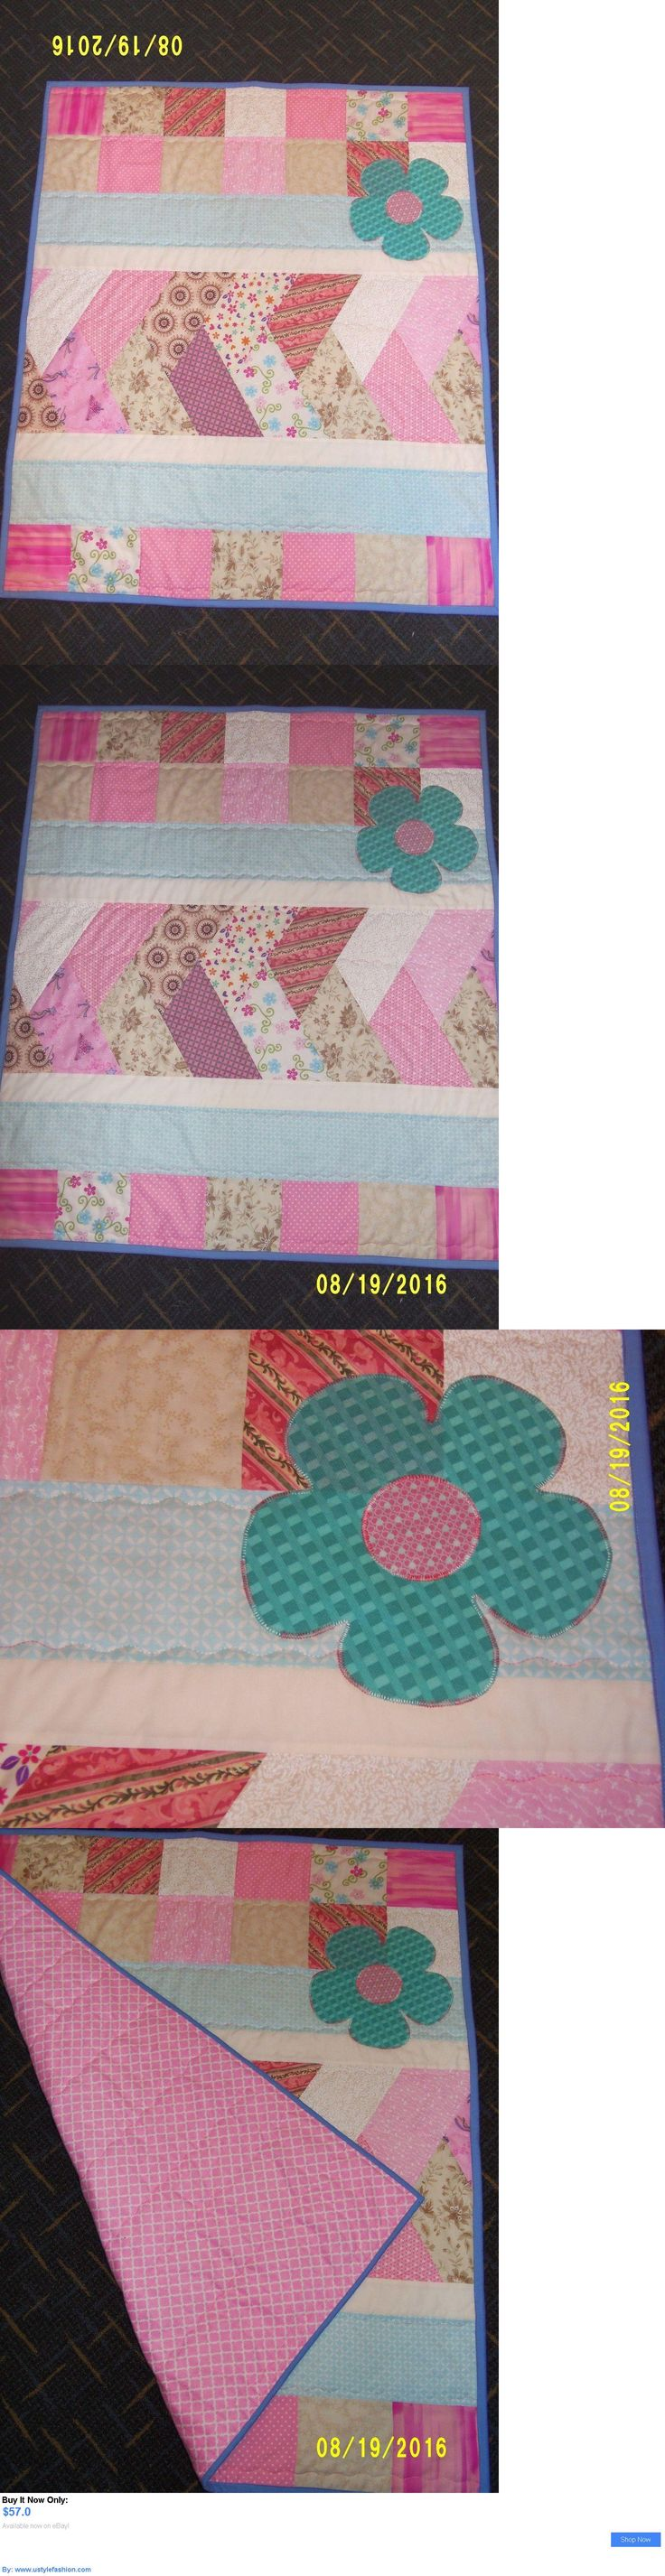 Quilts And Coverlets: Baby Girls Pink Quilt Blanket, Nursery Bedding For Girls, Crib Quilts, Gifts BUY IT NOW ONLY: $57.0 #ustylefashionQuiltsAndCoverlets OR #ustylefashion